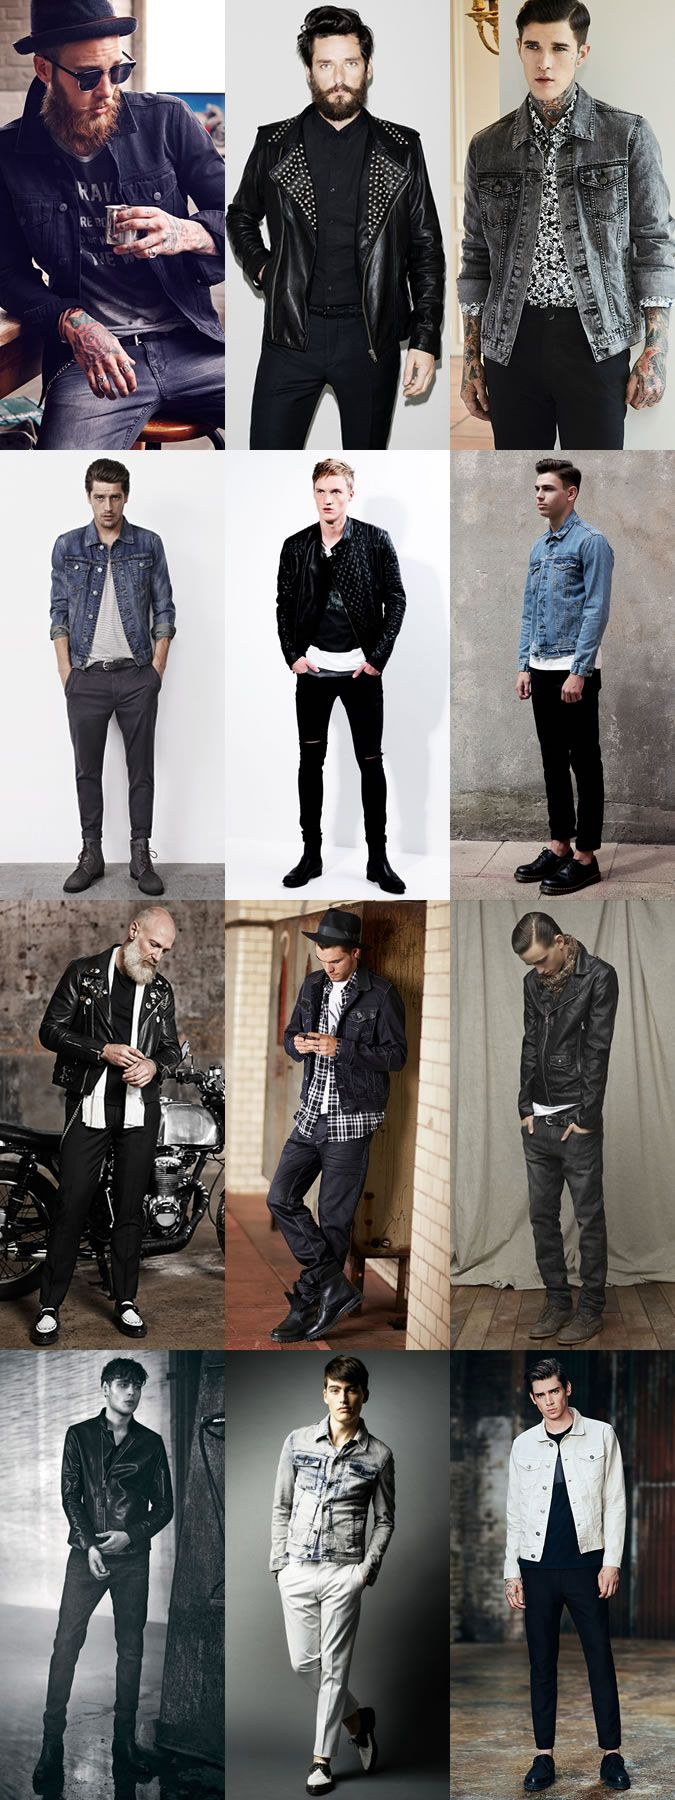 Men's 2014 Autumn/Winter Fashion Trend: Rockabilly Style with the right Jacket Lookbook Inspiration